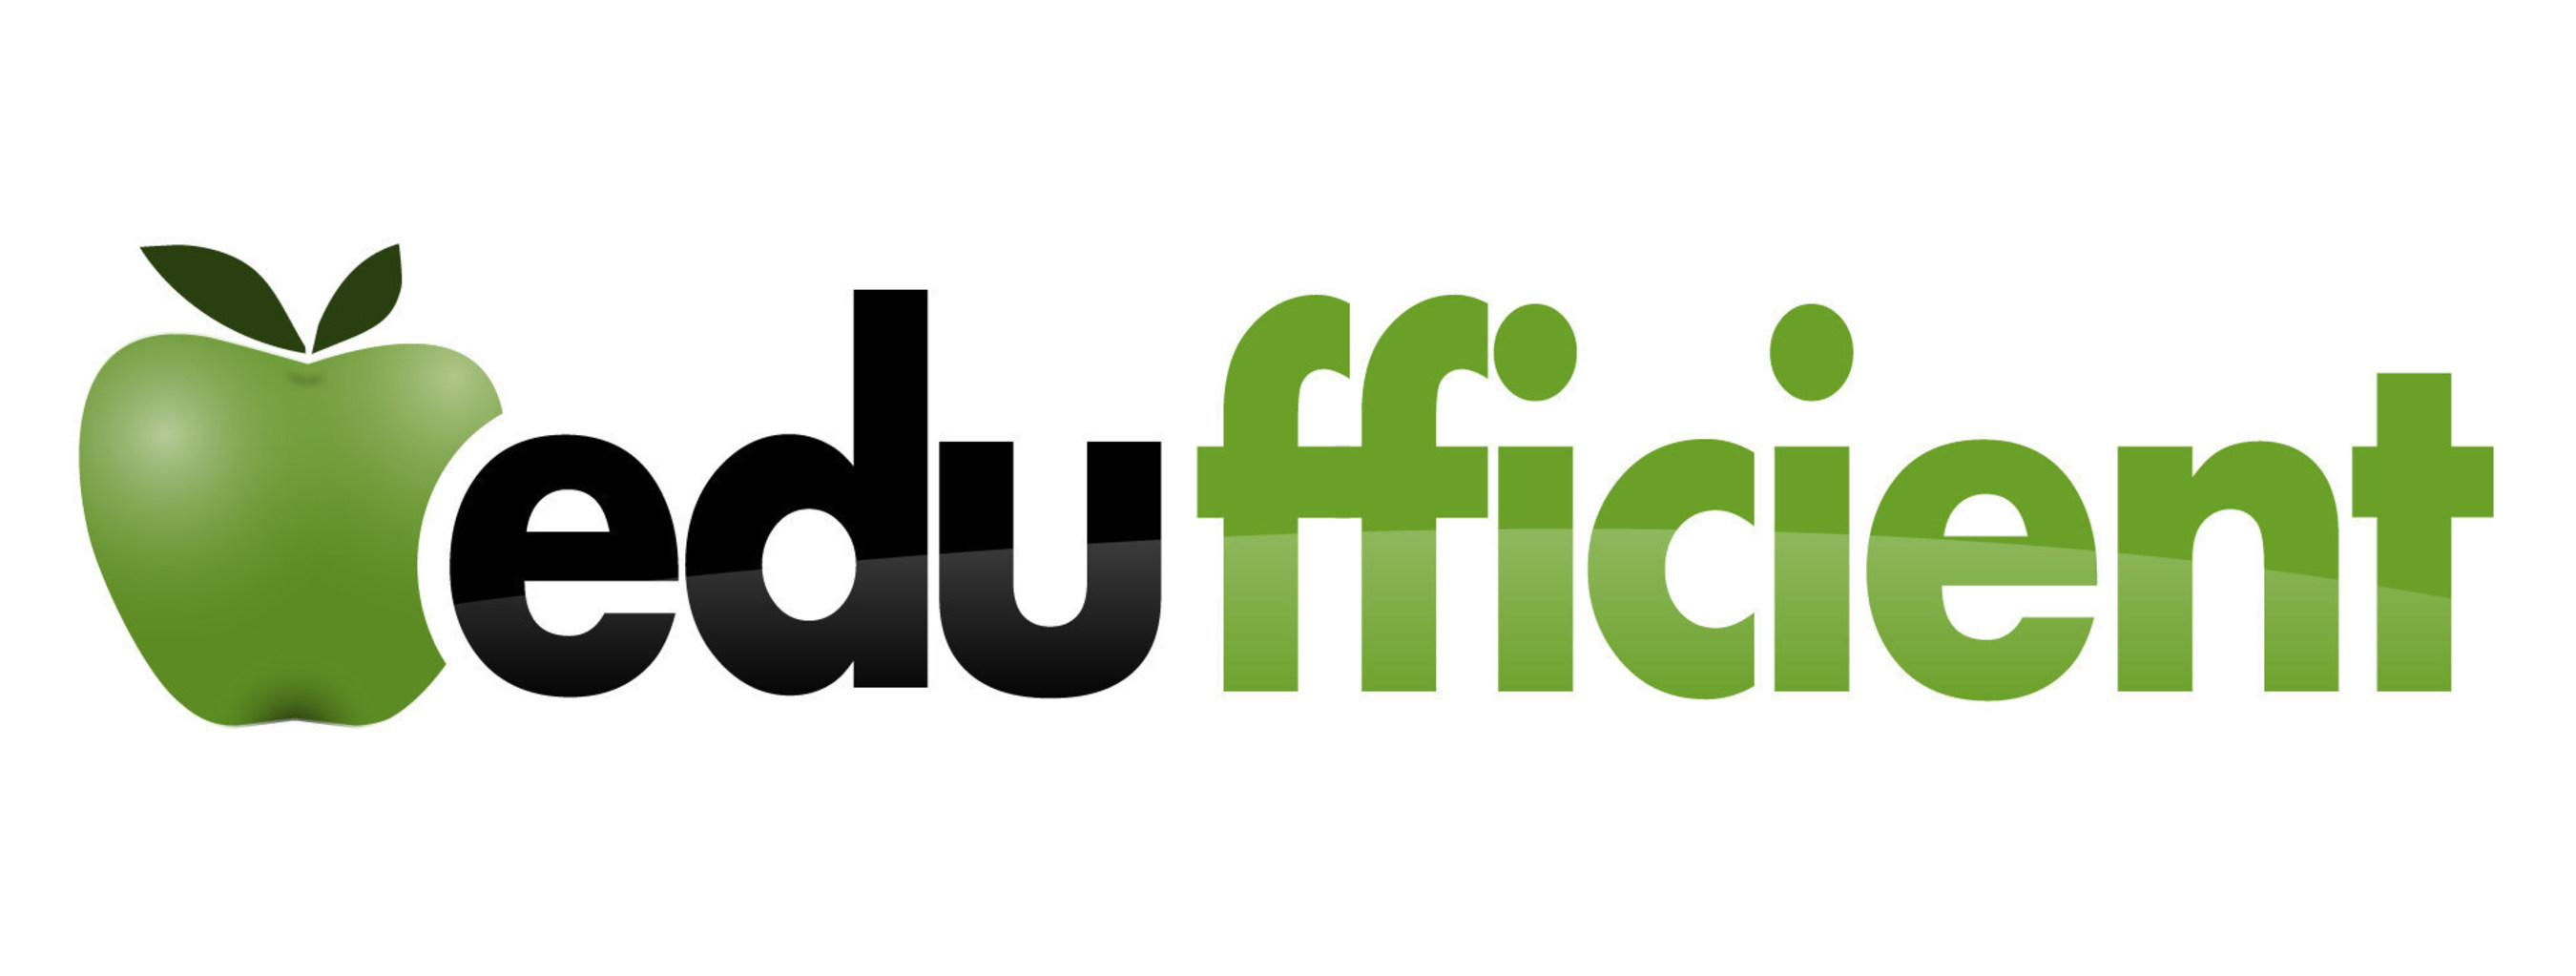 Edufficient Ranks No. 58 on the 2016 Inc. 5000 with Three-Year Sales Growth of 4,579%